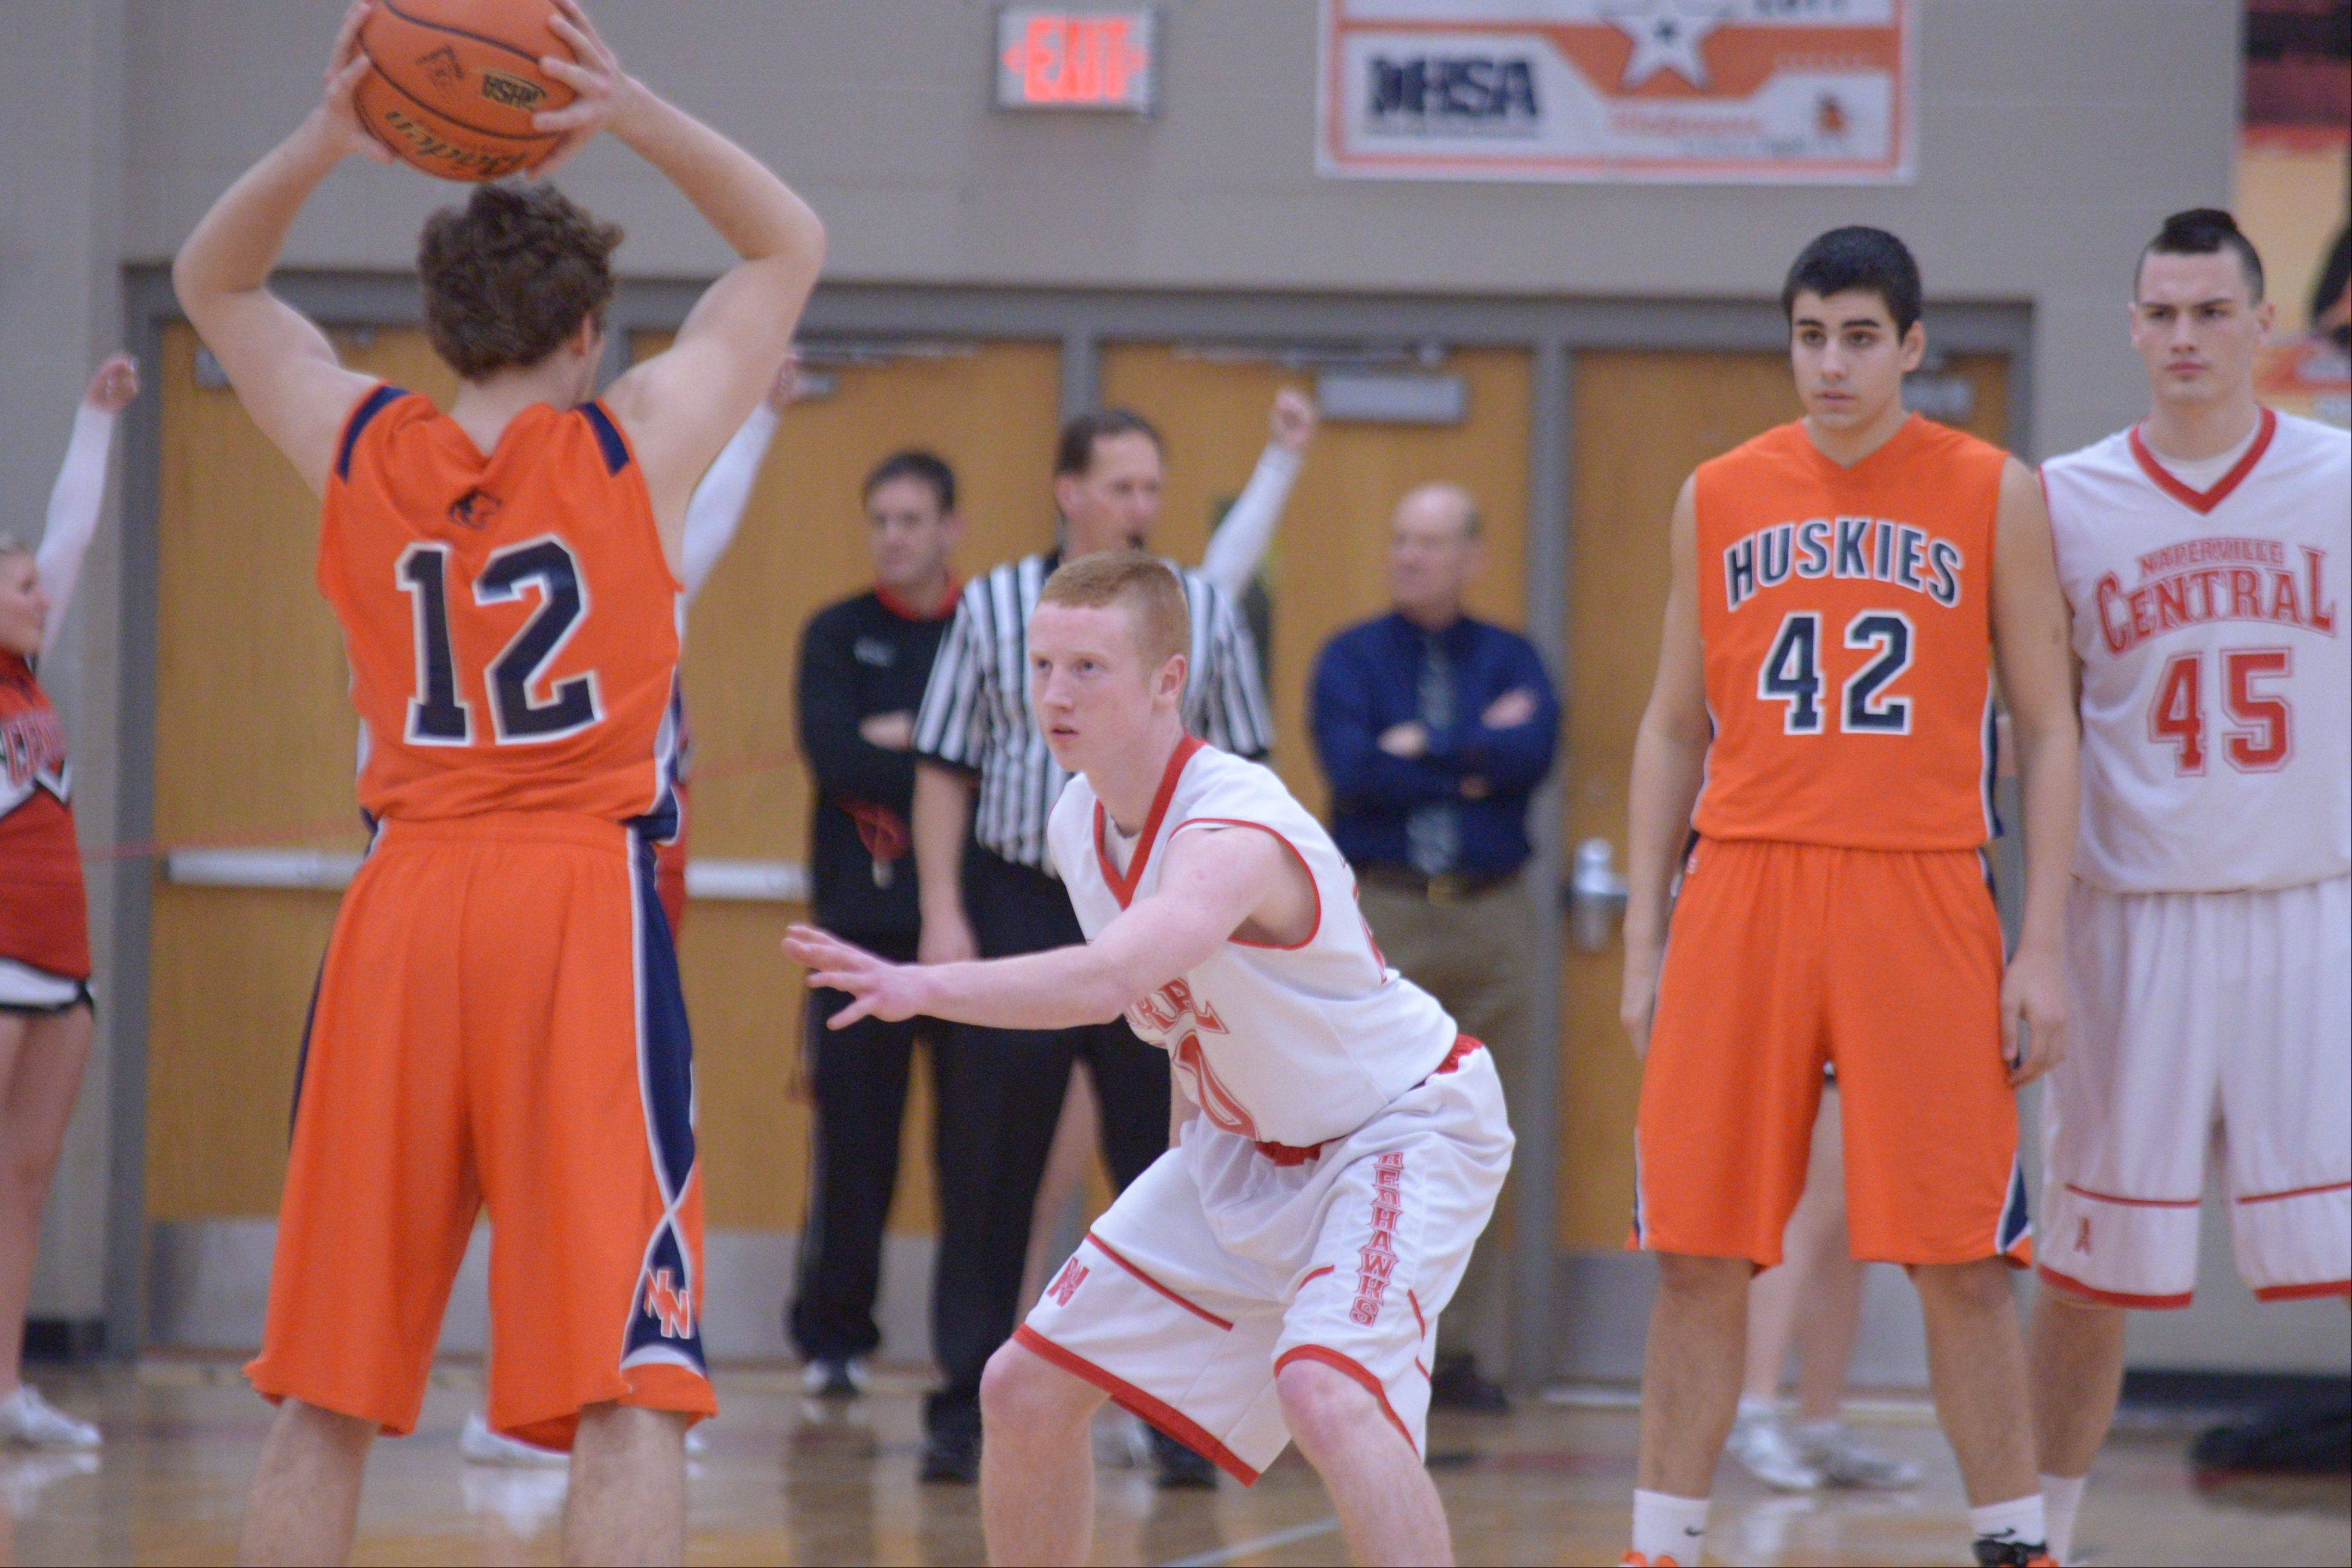 Images: Naprville North vs. Naperville Central, boys basketball